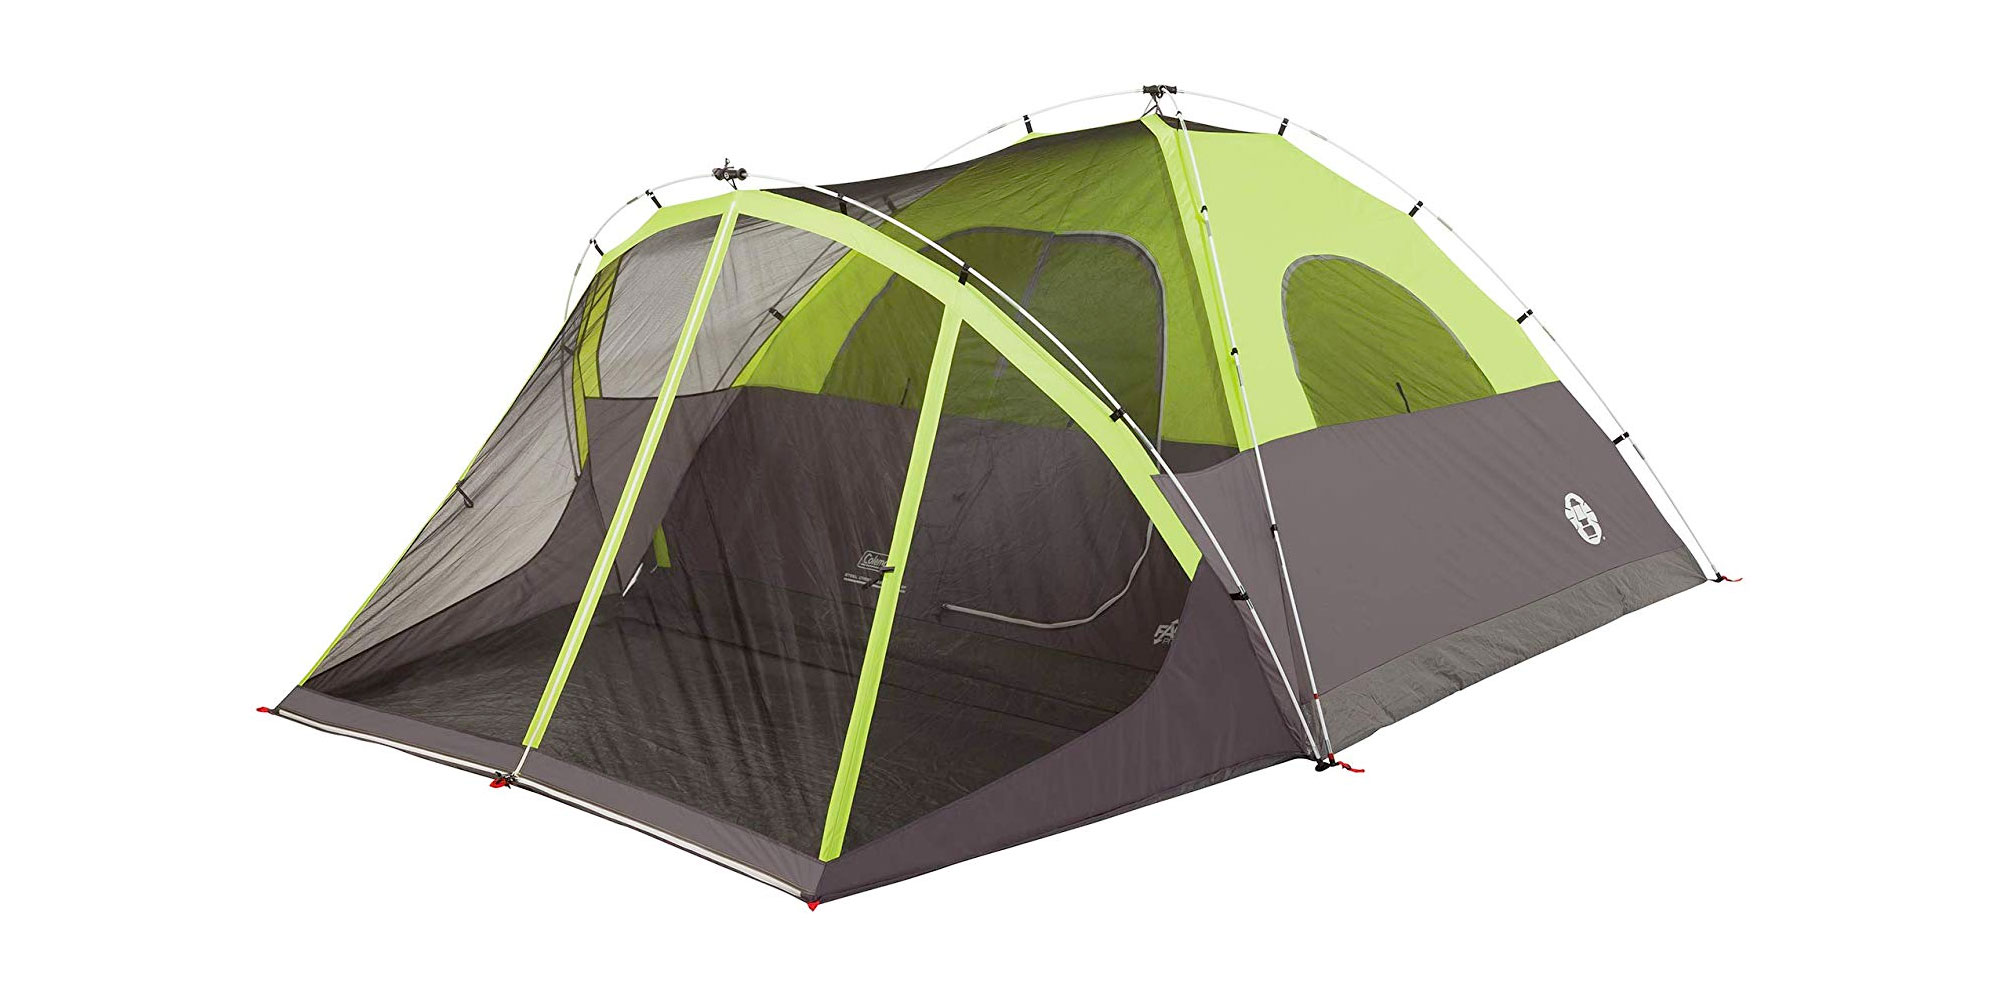 Coleman's dome tent set up in under 10-minutes + sleeps six: $95 (Reg. $120+) - 9to5Toys